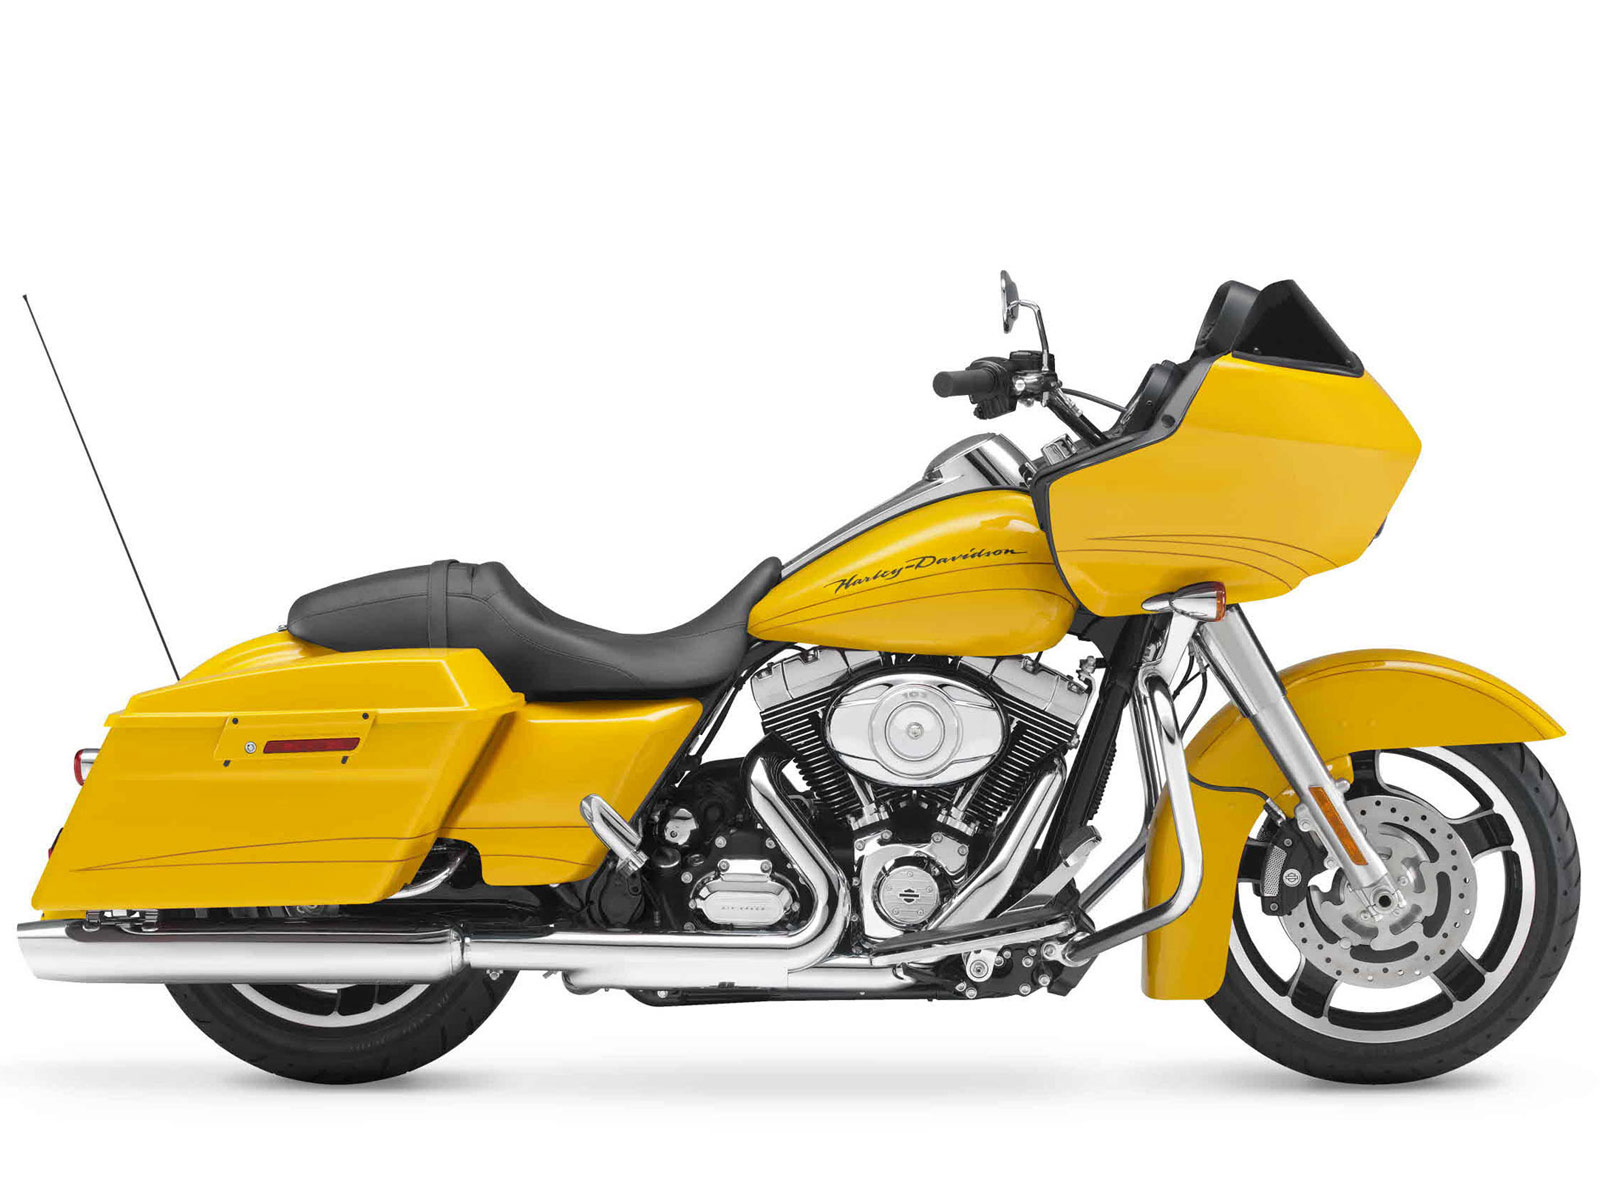 Harley Davidson Road Glide Specifications